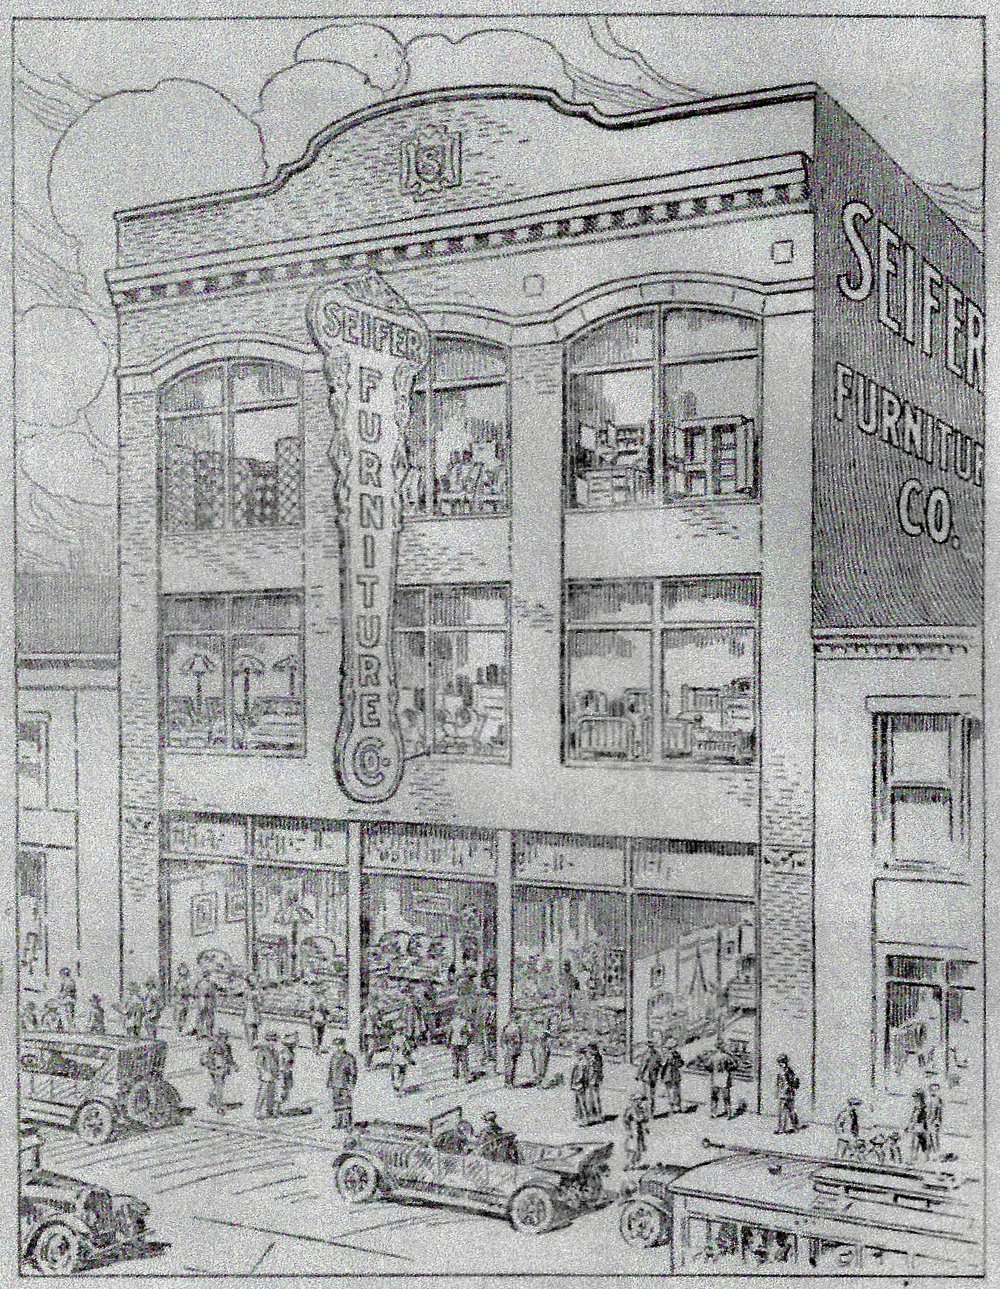 Seifer's Furniture was a major part of downtown Whiting from the early 20th century. It's first store, founded in 1908, was at the corner of 119th and New York Avenue. In 1920, it opened its new, larger store just up the street at 1406 119th Street.